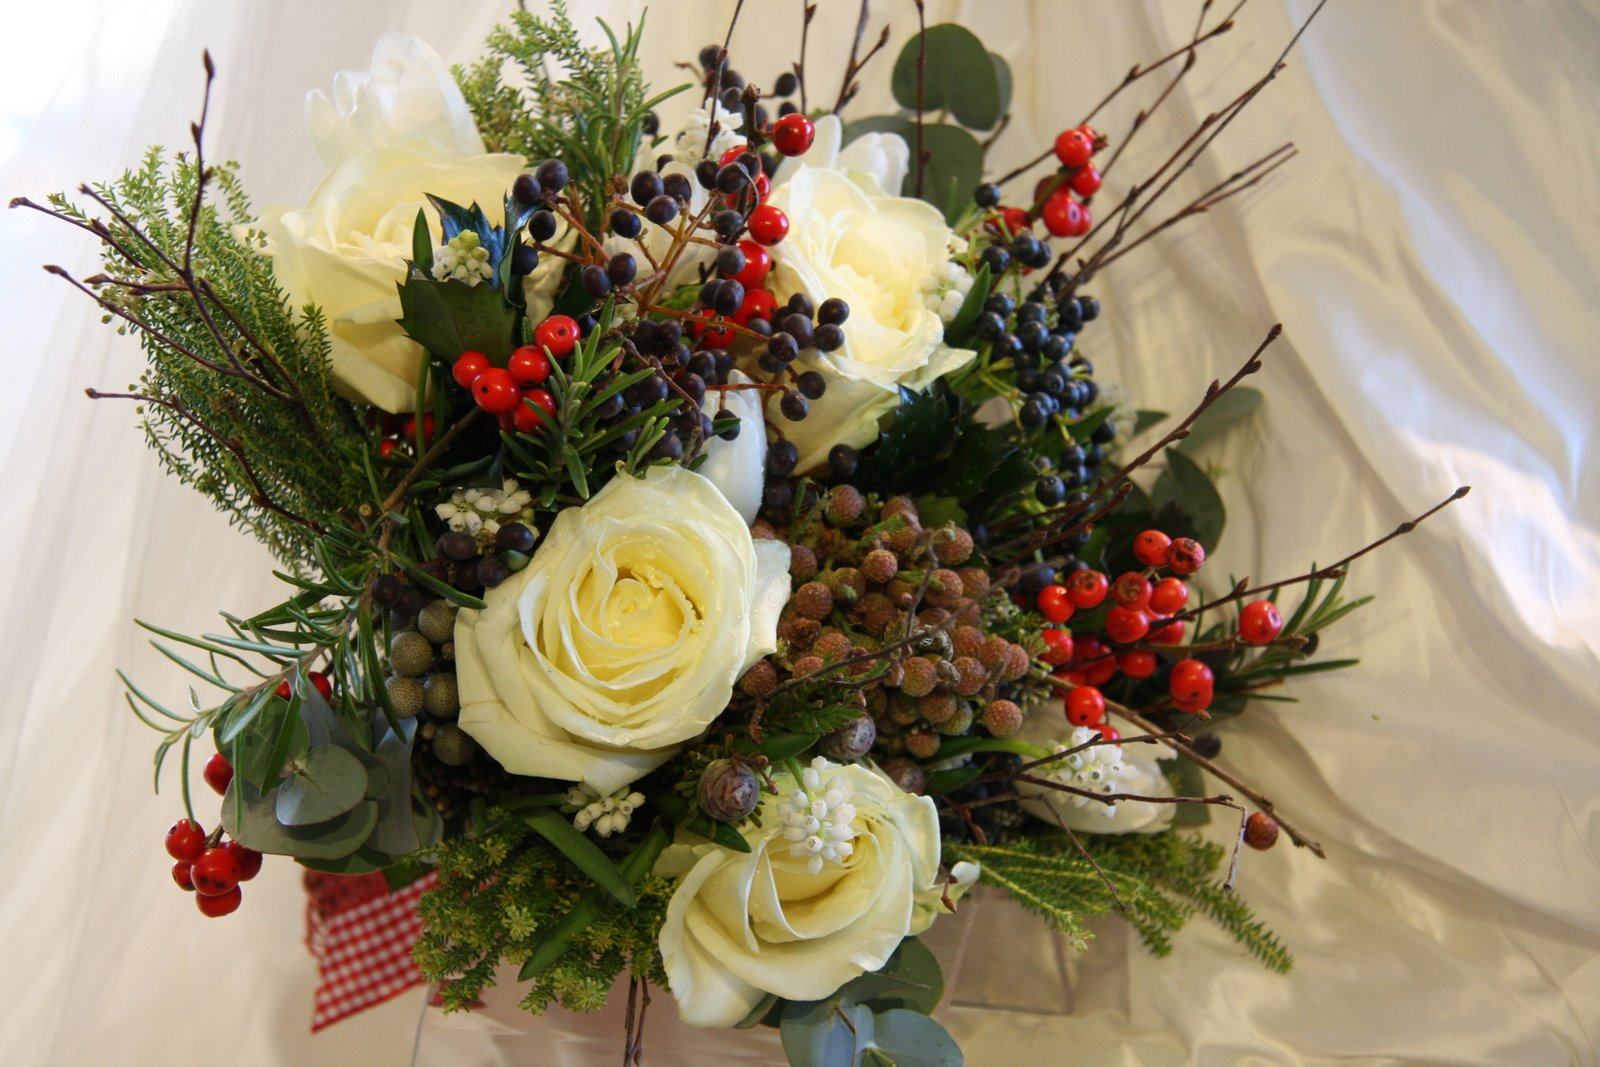 Jpg 1 600 067 Pixels Wedding Table Flowers Pinterest Christmas Bouquets And Ideas